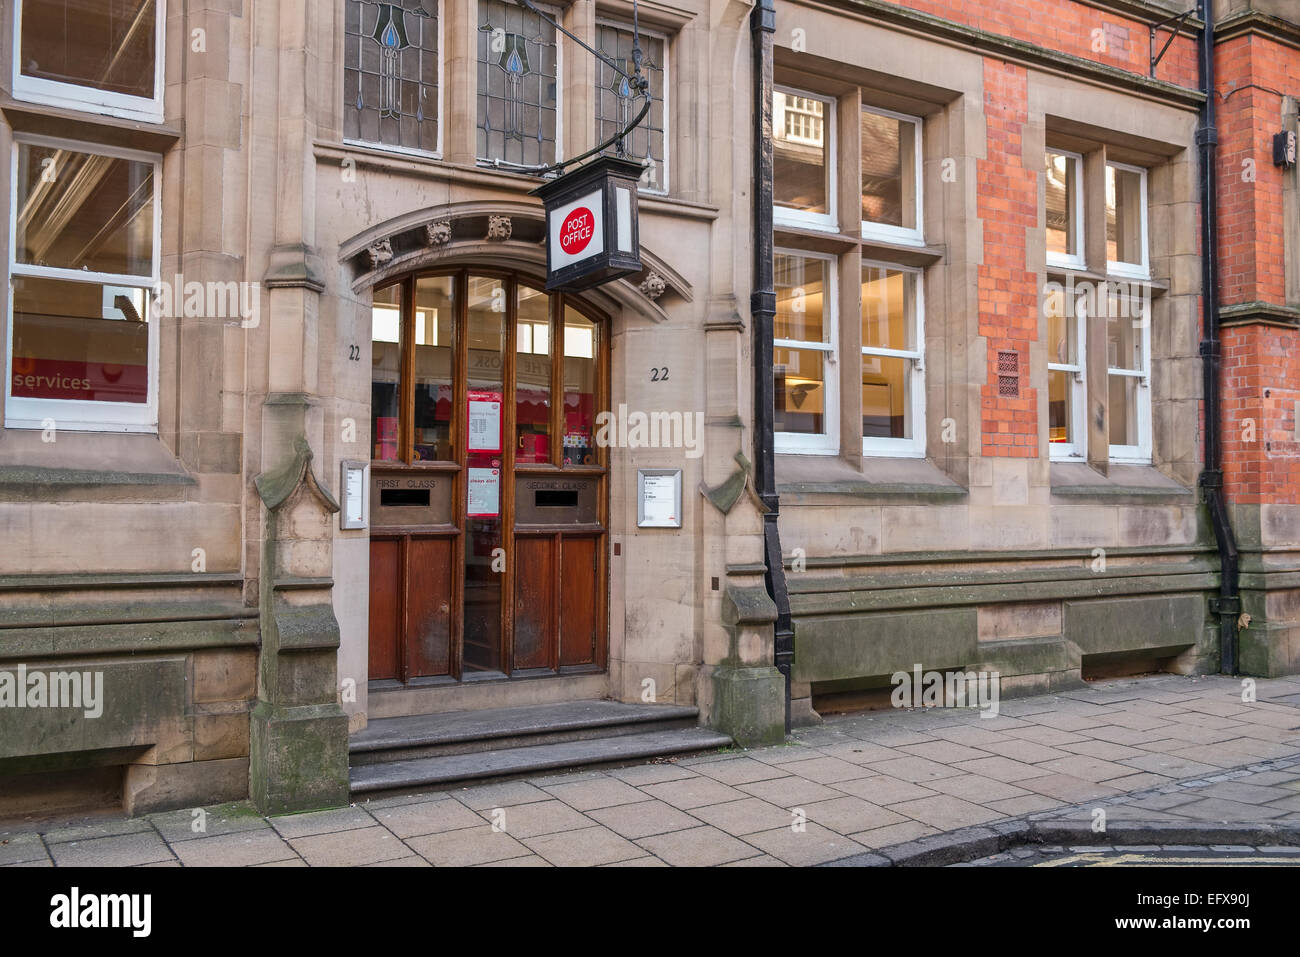 York a main Post Office First Class and Second Class postbox postboxes post box boxes plus sign logo. - Stock Image